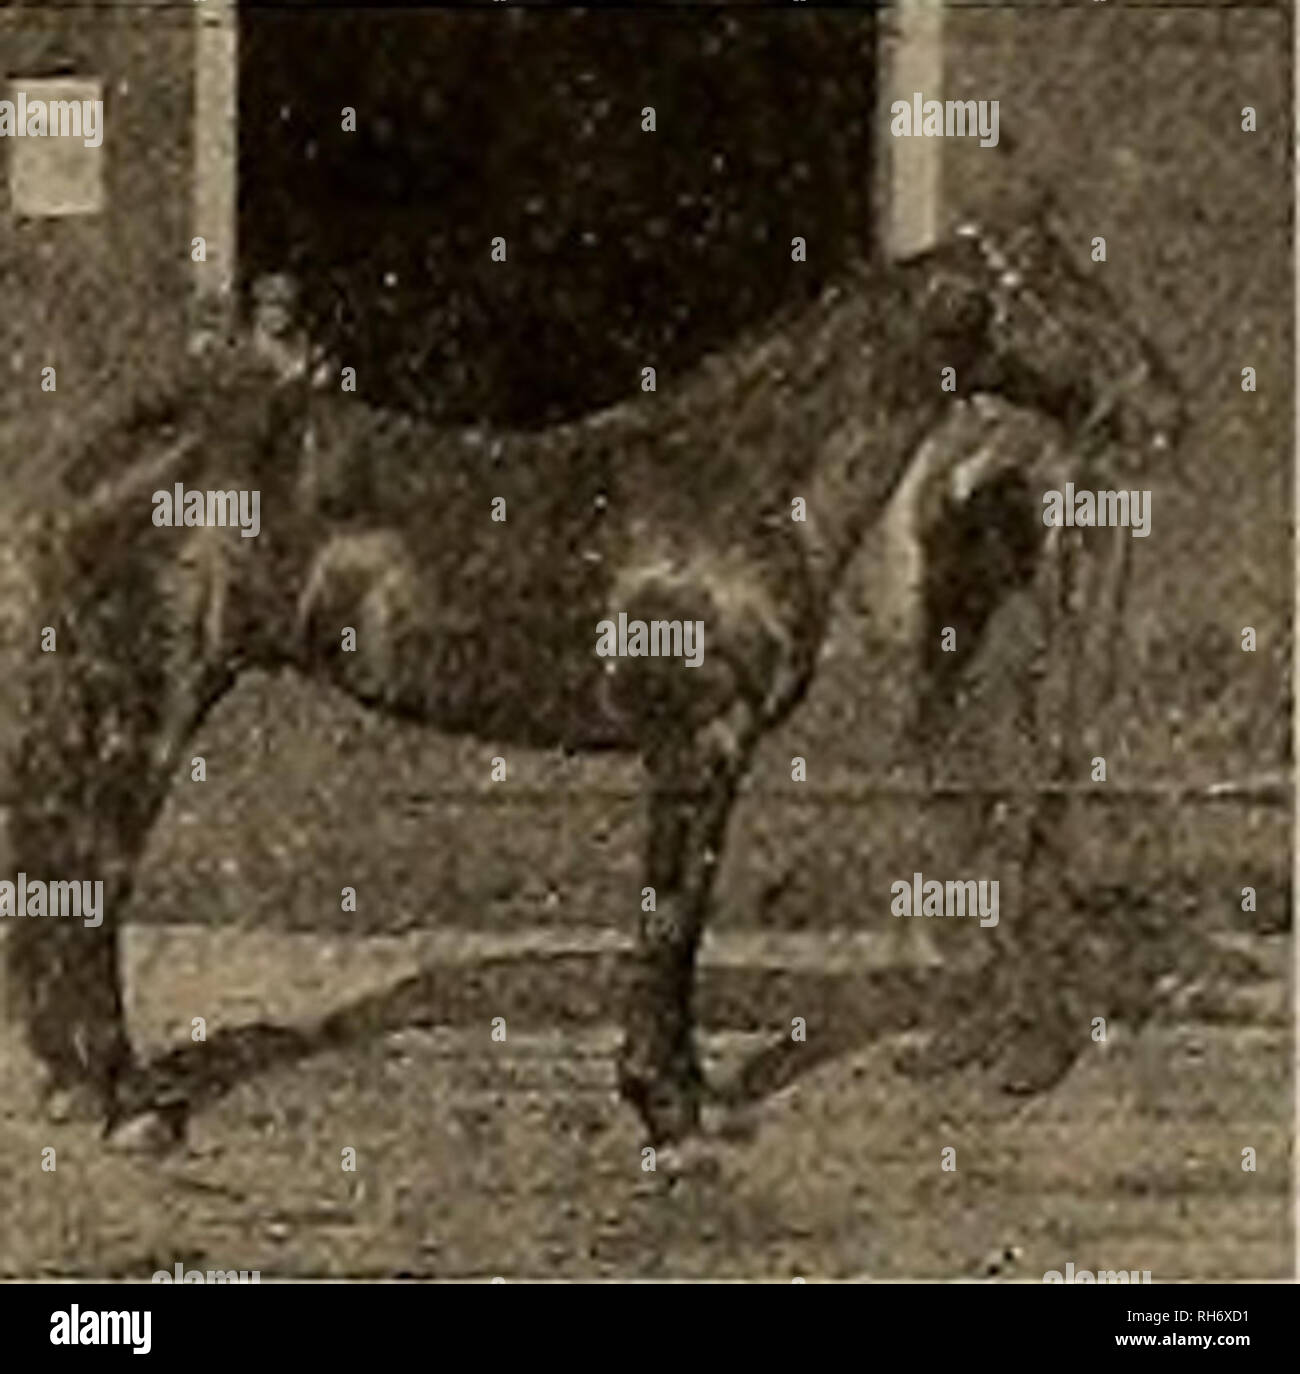 Breeder and sportsman  Horses  M00RM0NT 44996 By Azmoor 2:20% (sire